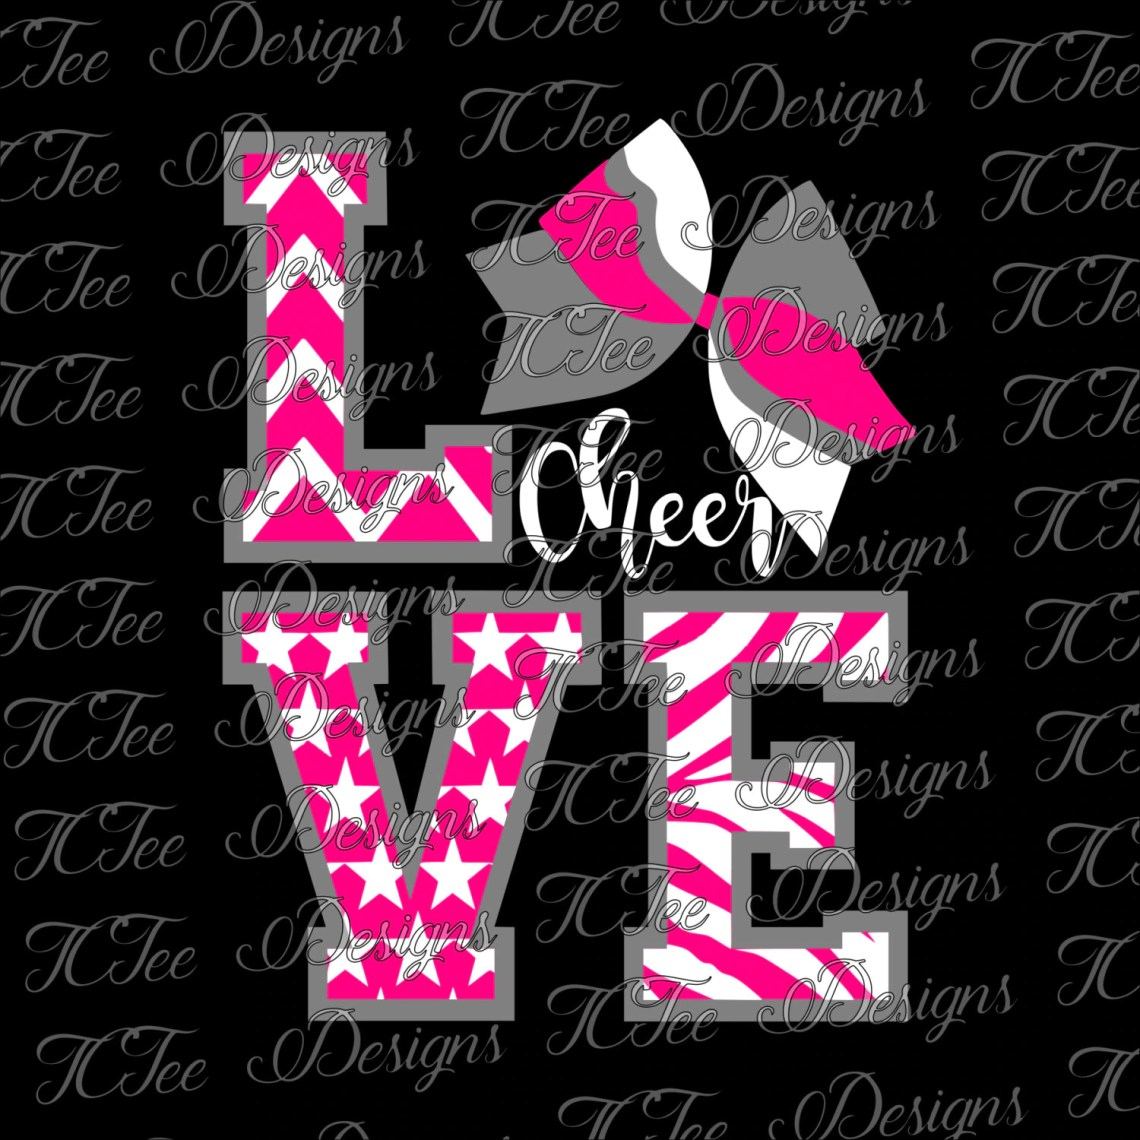 Download Love Cheer - SVG from TCTeeDesigns on Etsy Studio